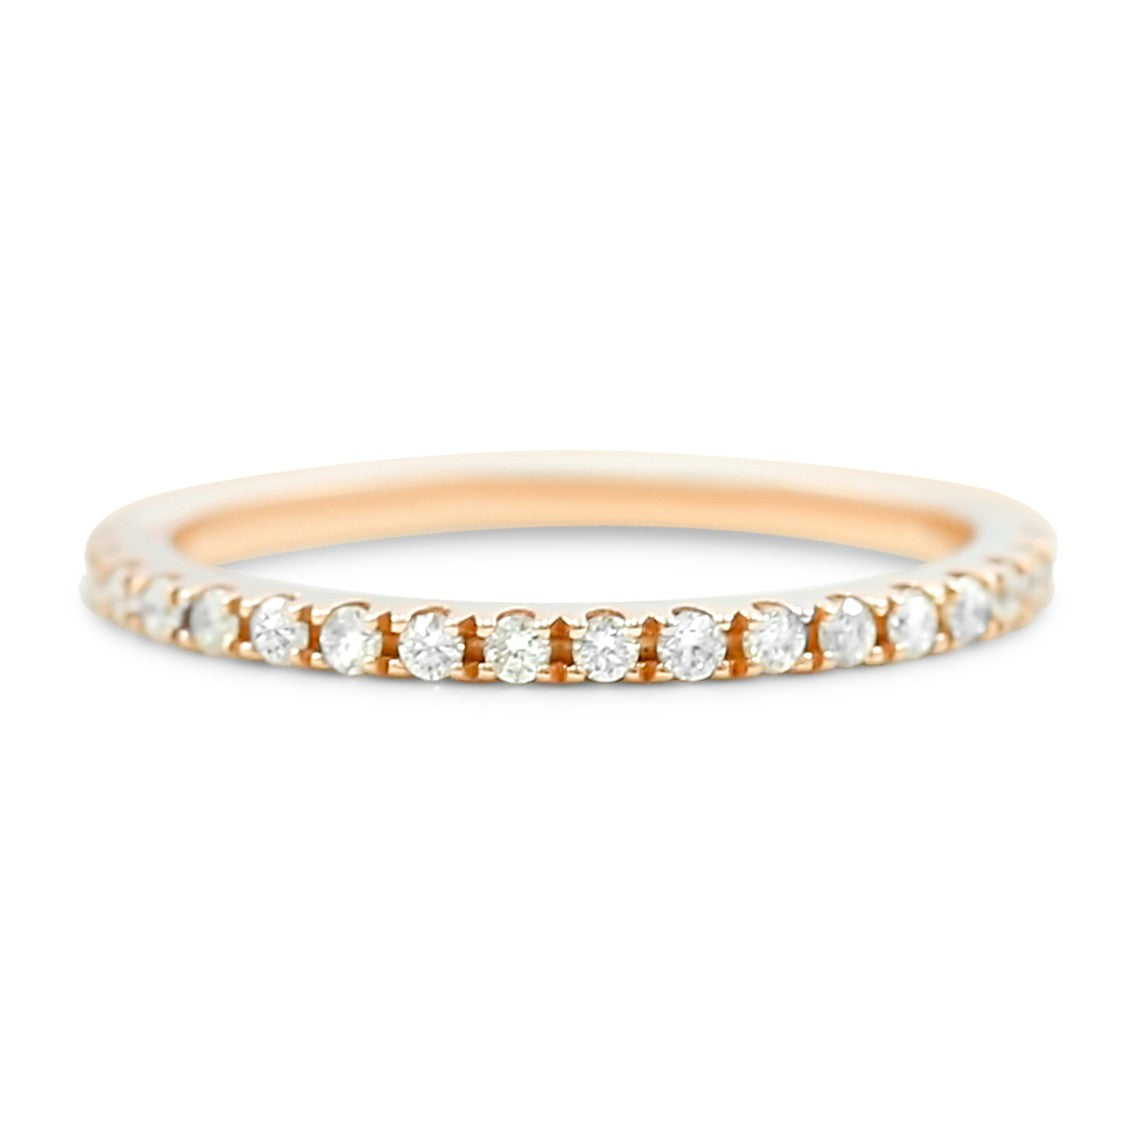 14k yellow, white or rose gold round diamond wedding band with split prongs fits flush